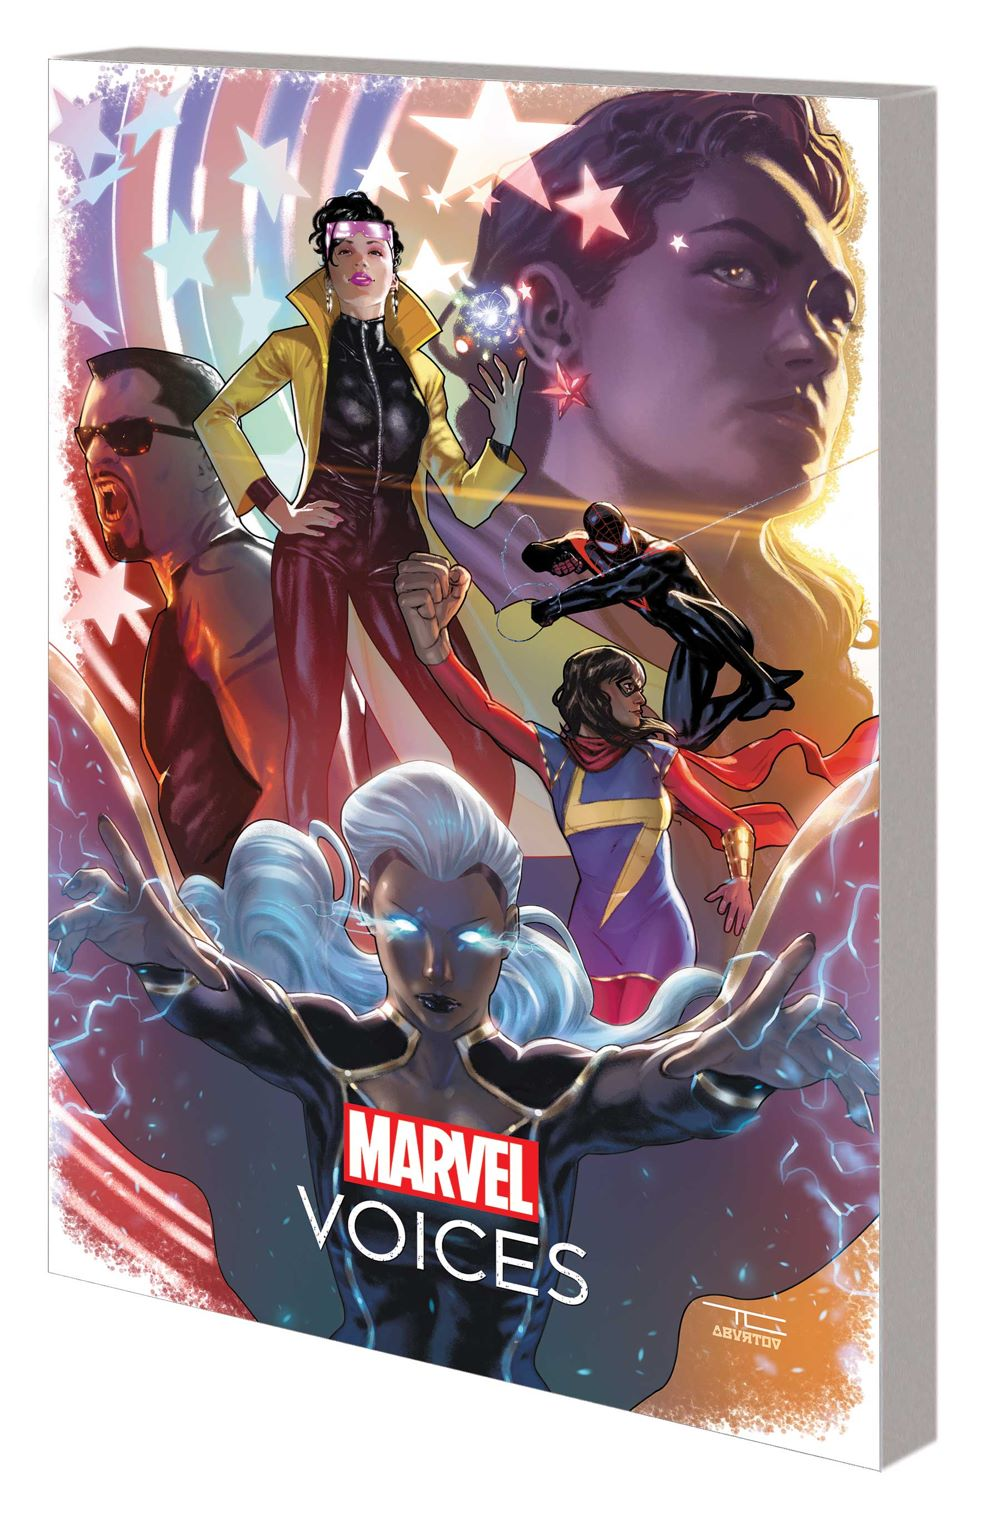 MARVOICESLEGACYTPB_cov Marvel Comics July 2021 Solicitations